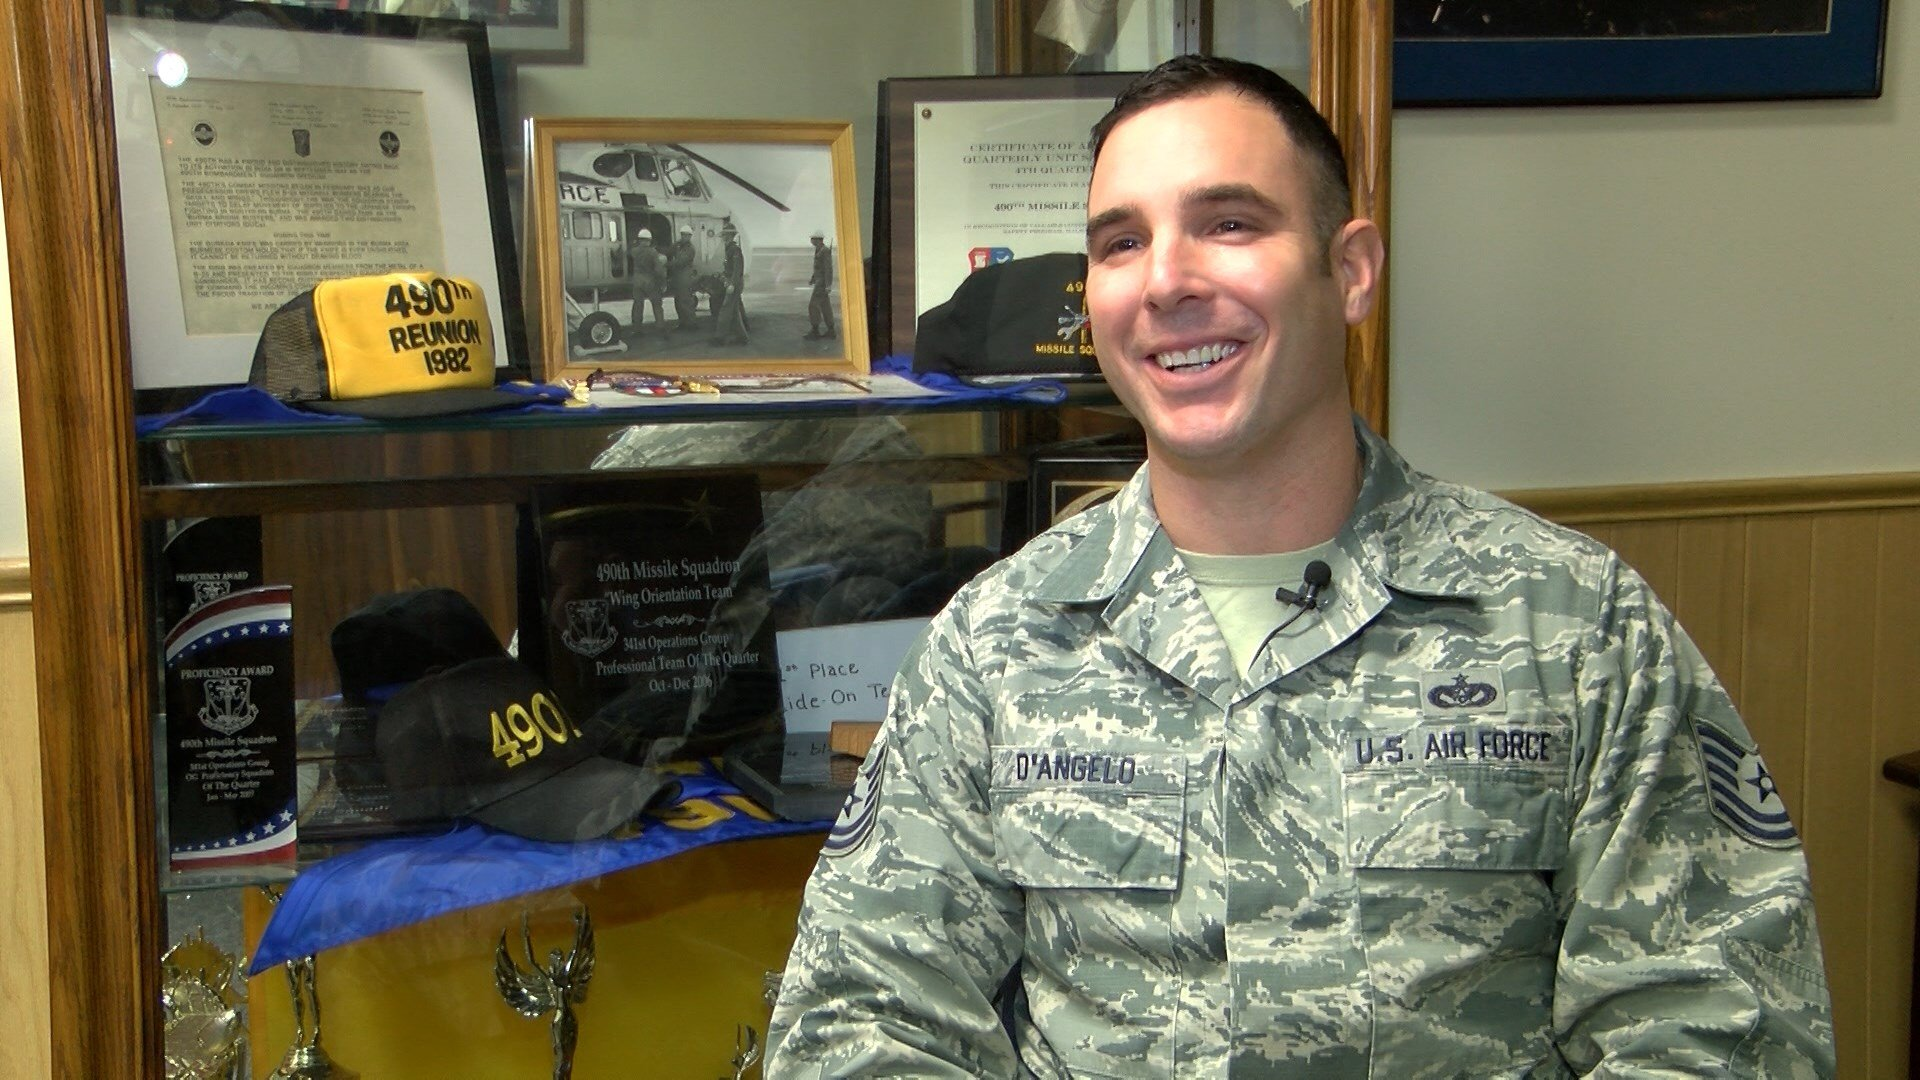 TSgt Christopher D'Angelo was awarded the Purple Heart in 2008.